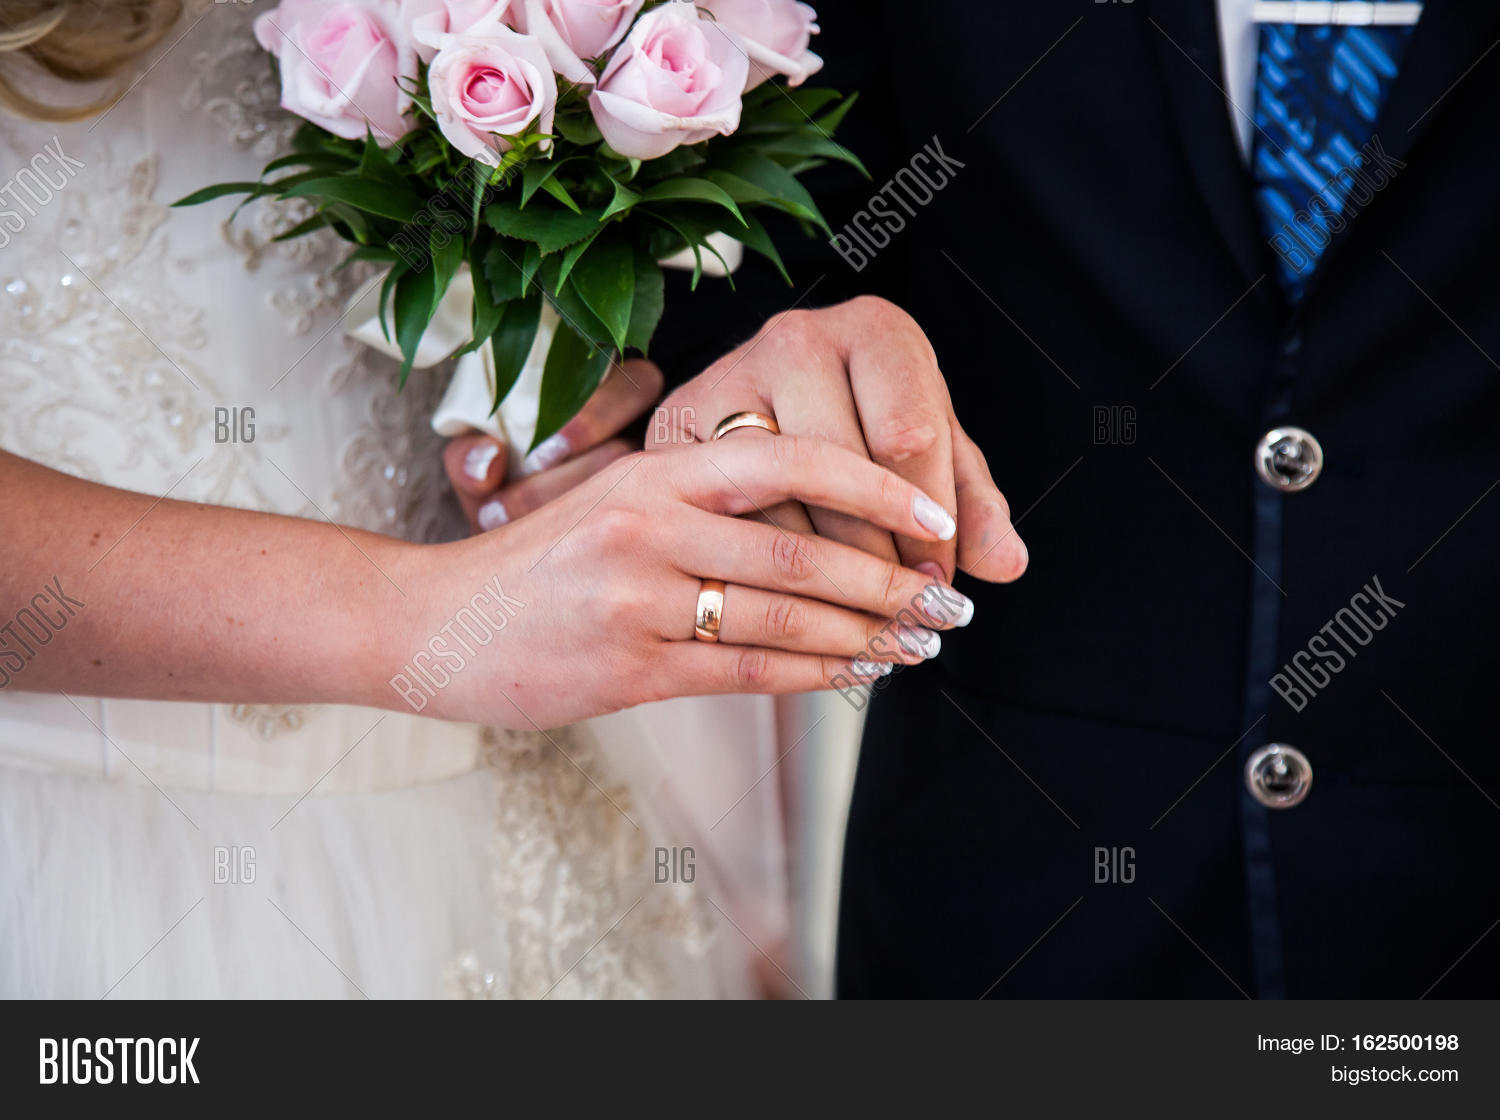 Wedding Stock Images RoyaltyFree Images amp Vectors